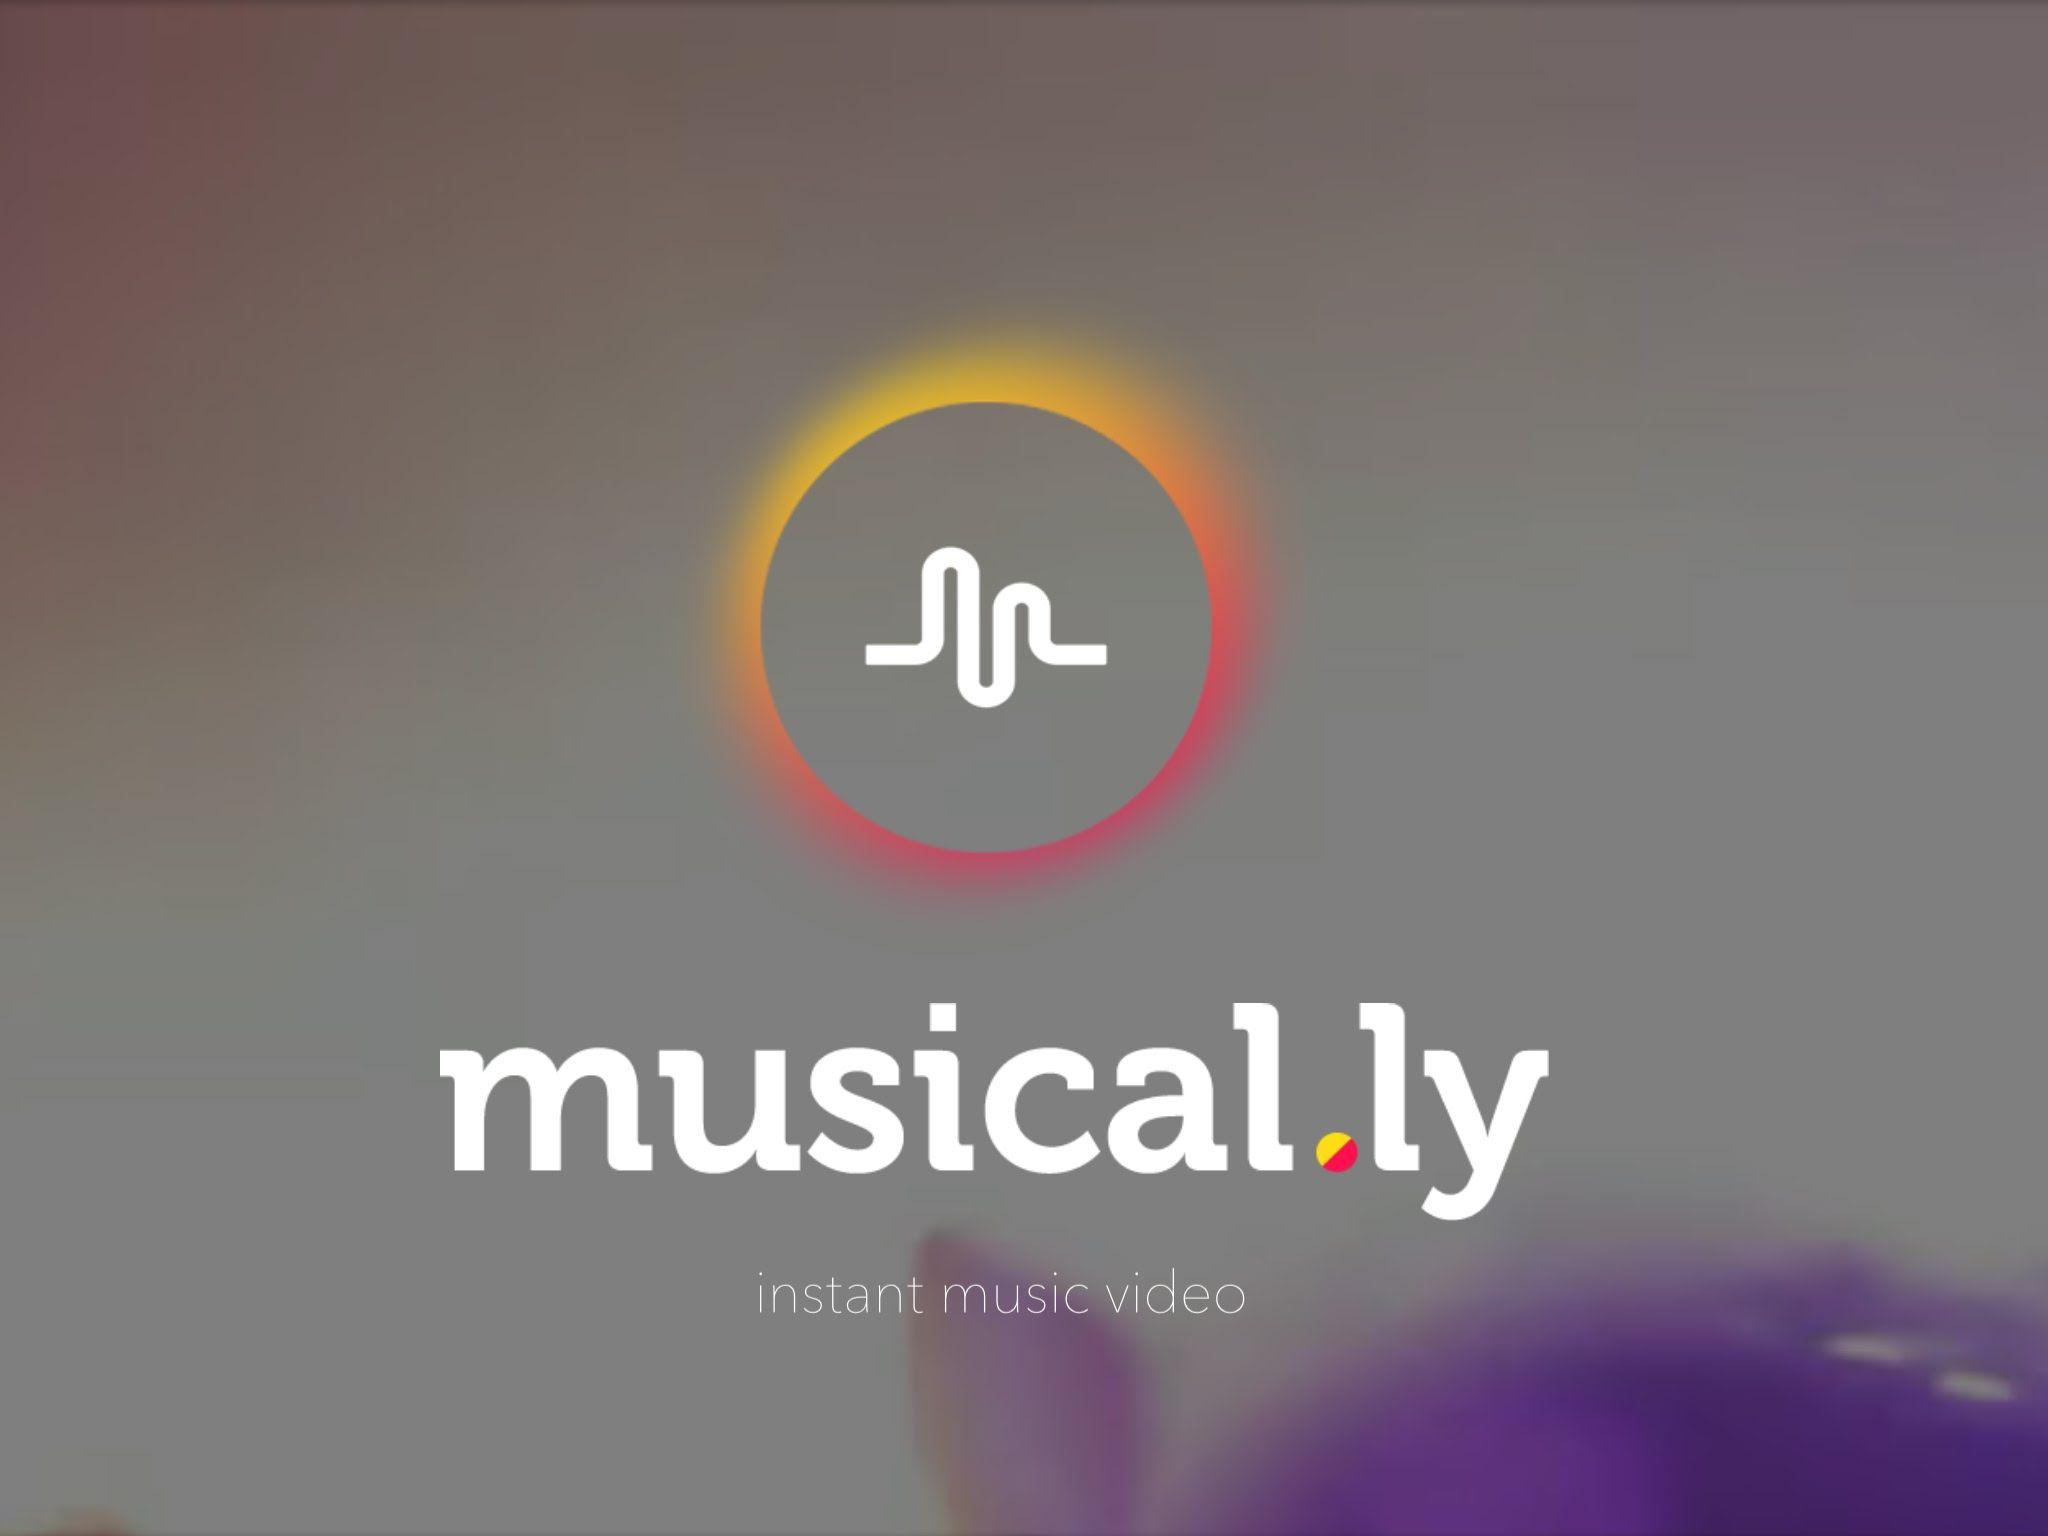 musically ly musical app wallpapers own making backgrounds wallpapercave